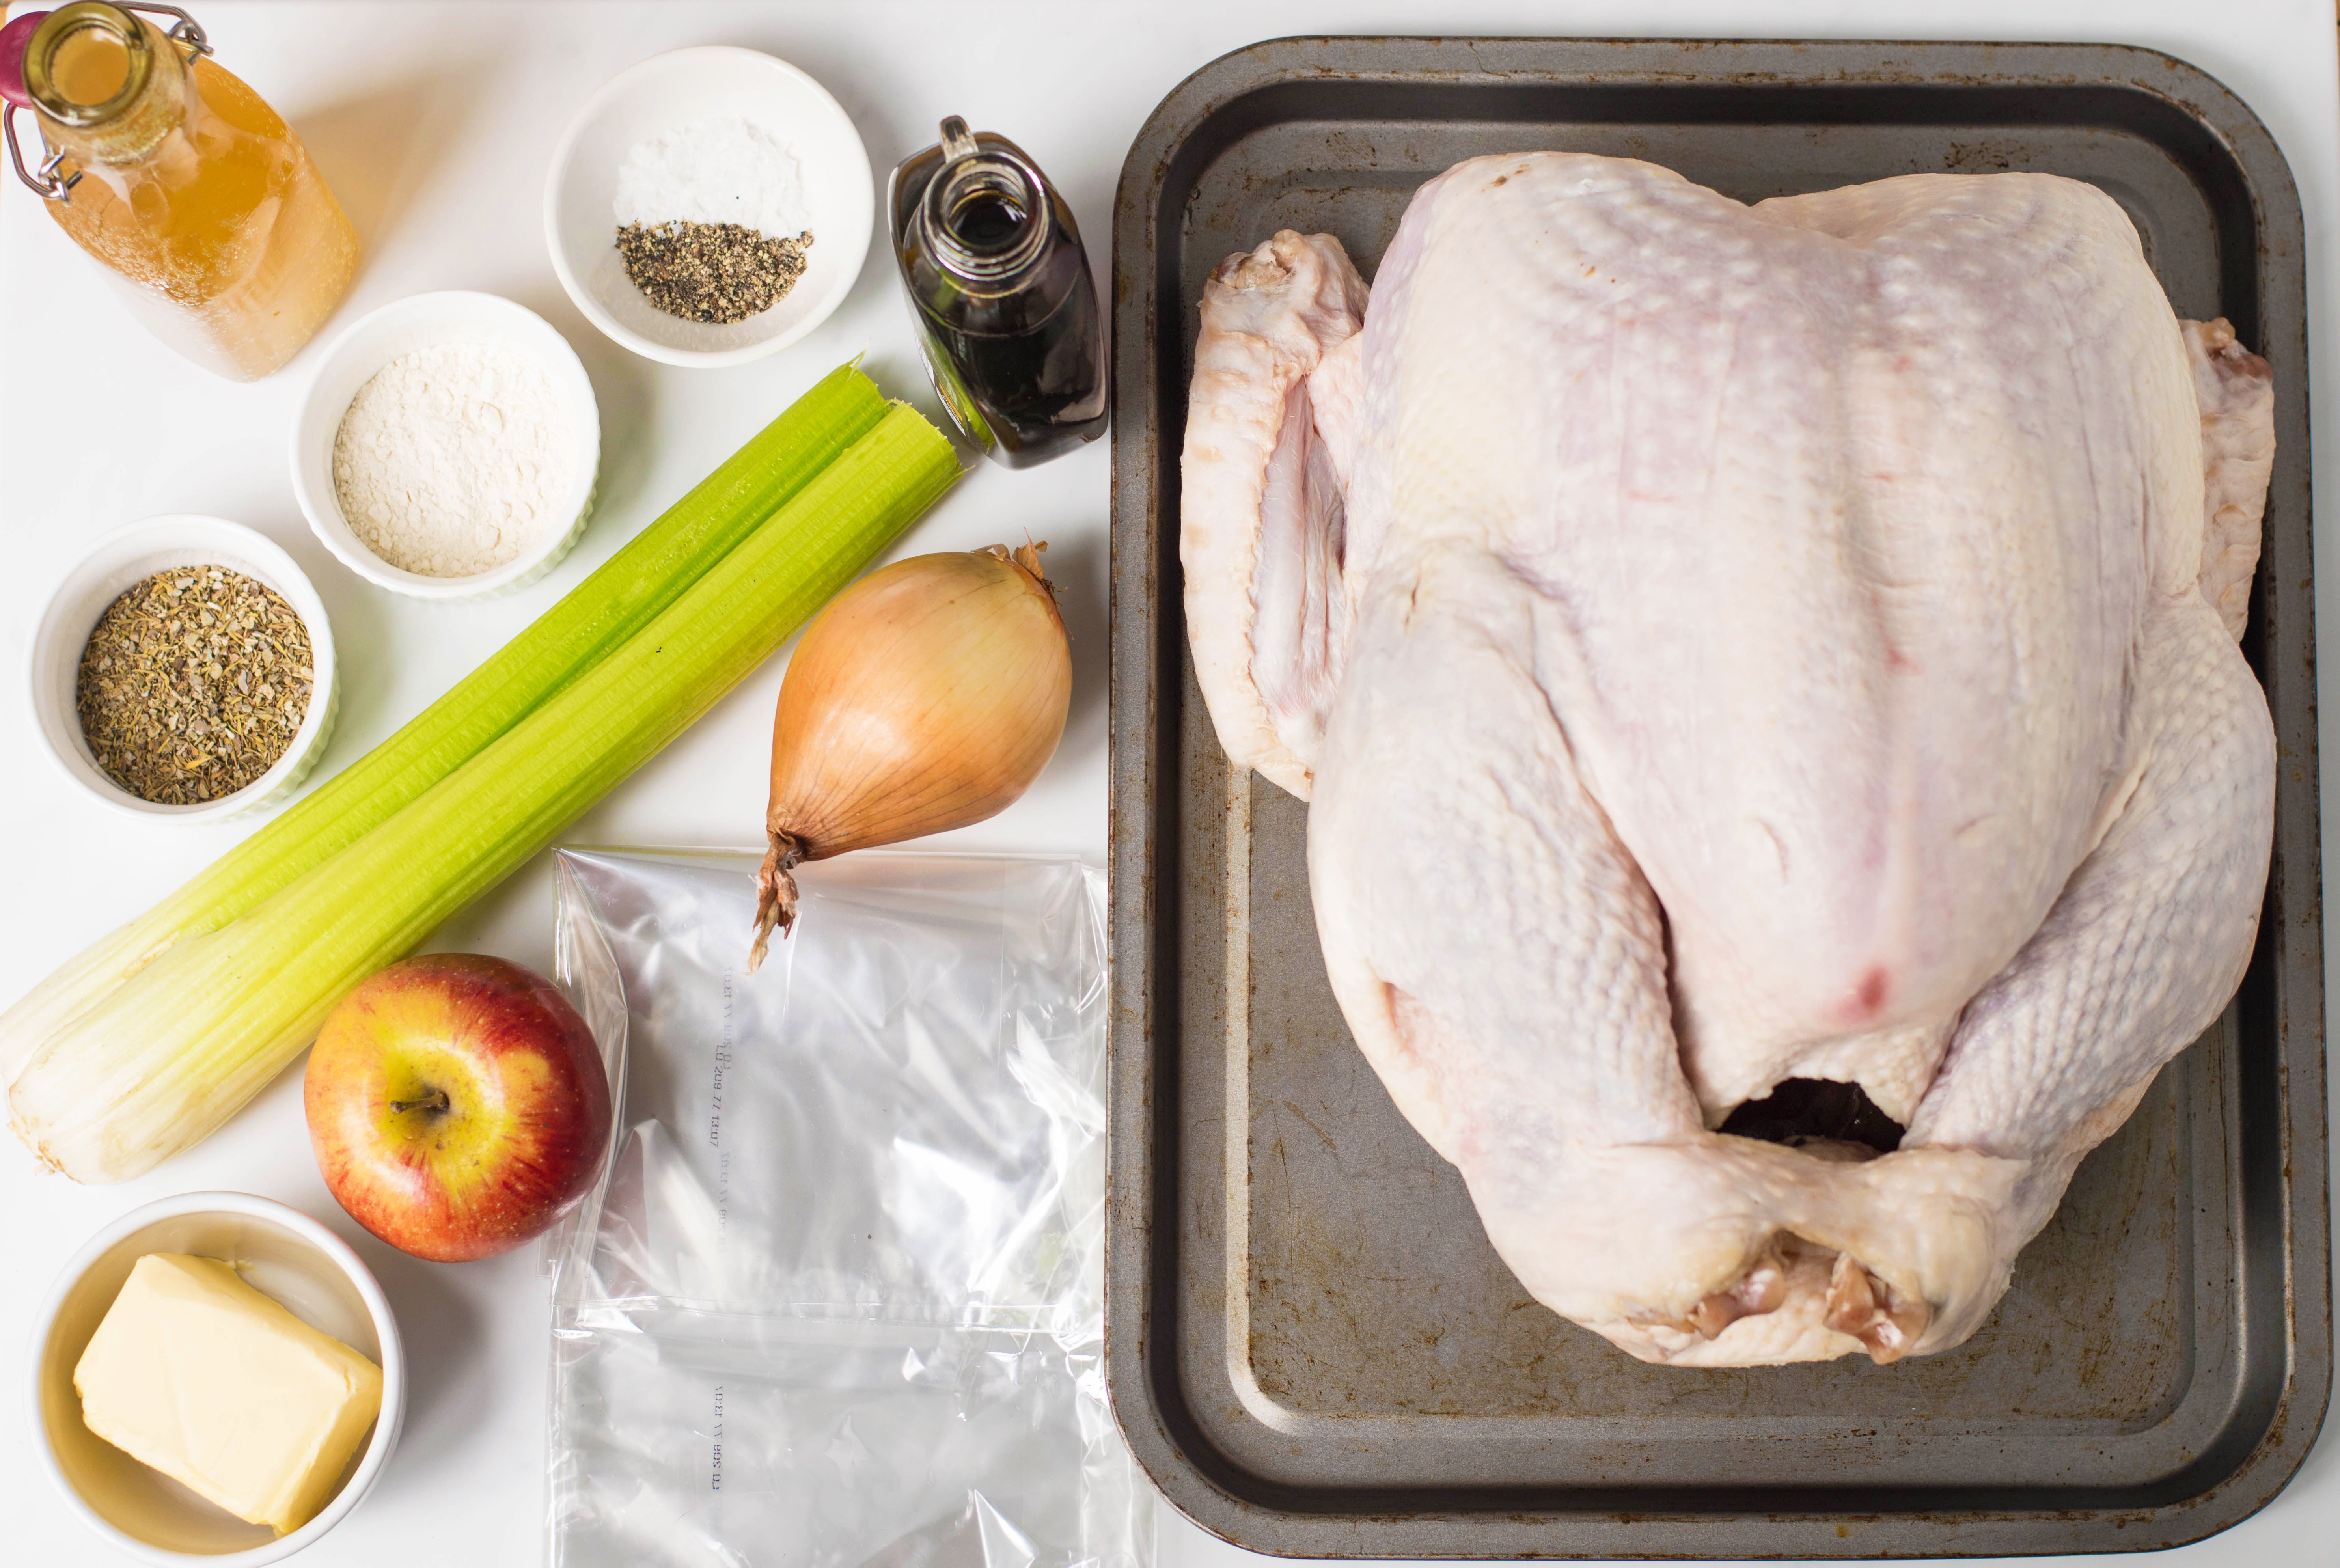 Ingredients for the oven bag turkey recipe